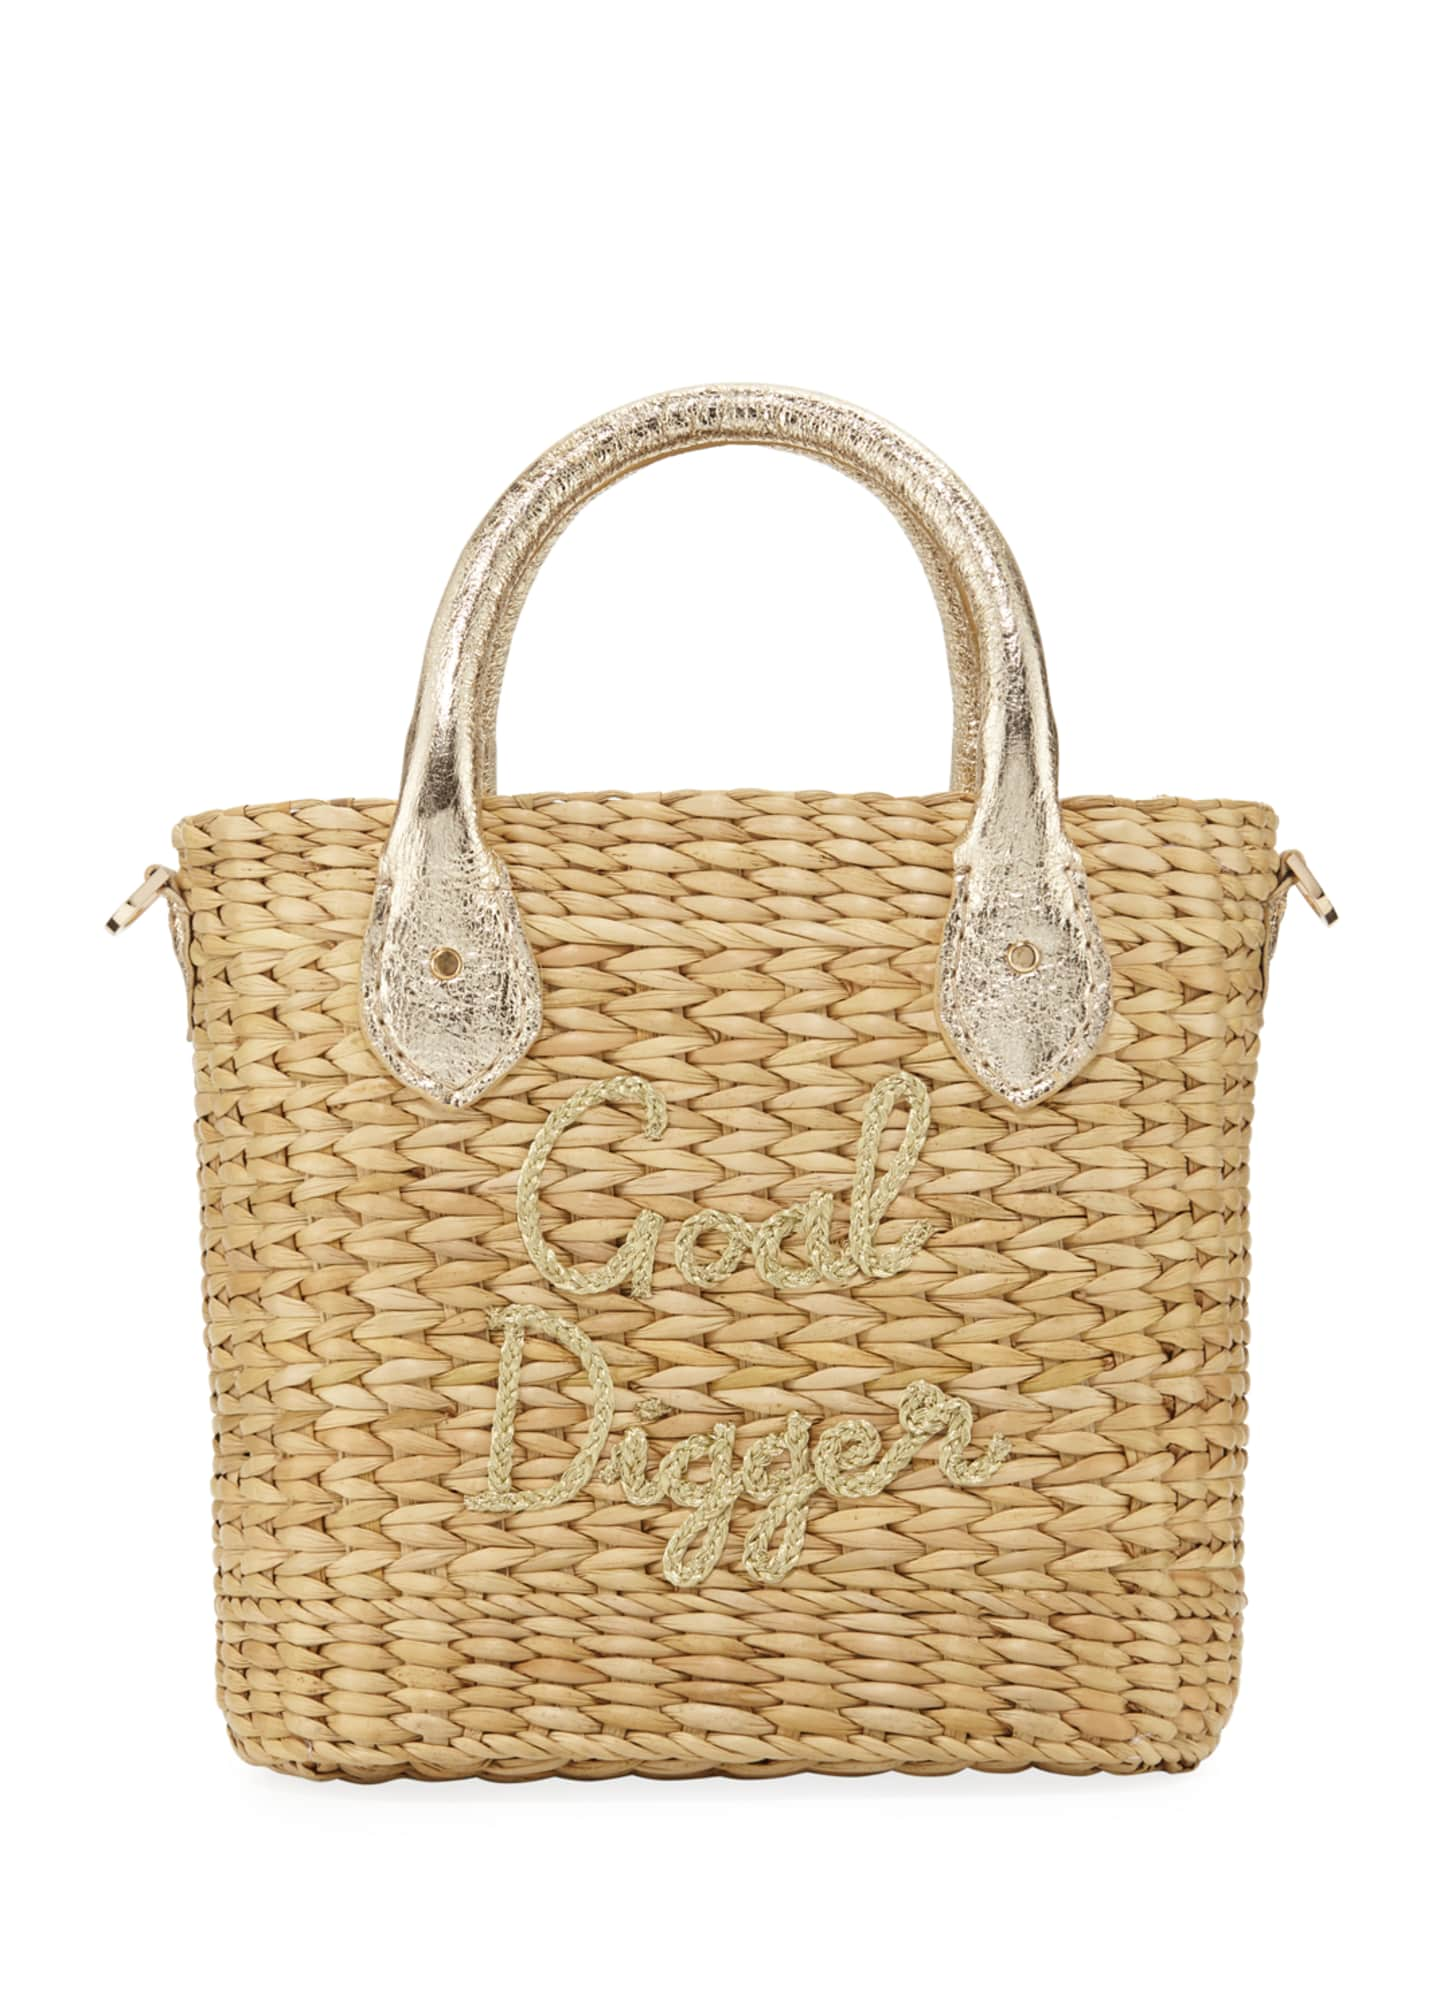 POOLSIDE Goal Digger Le Nord Small Tote Bag